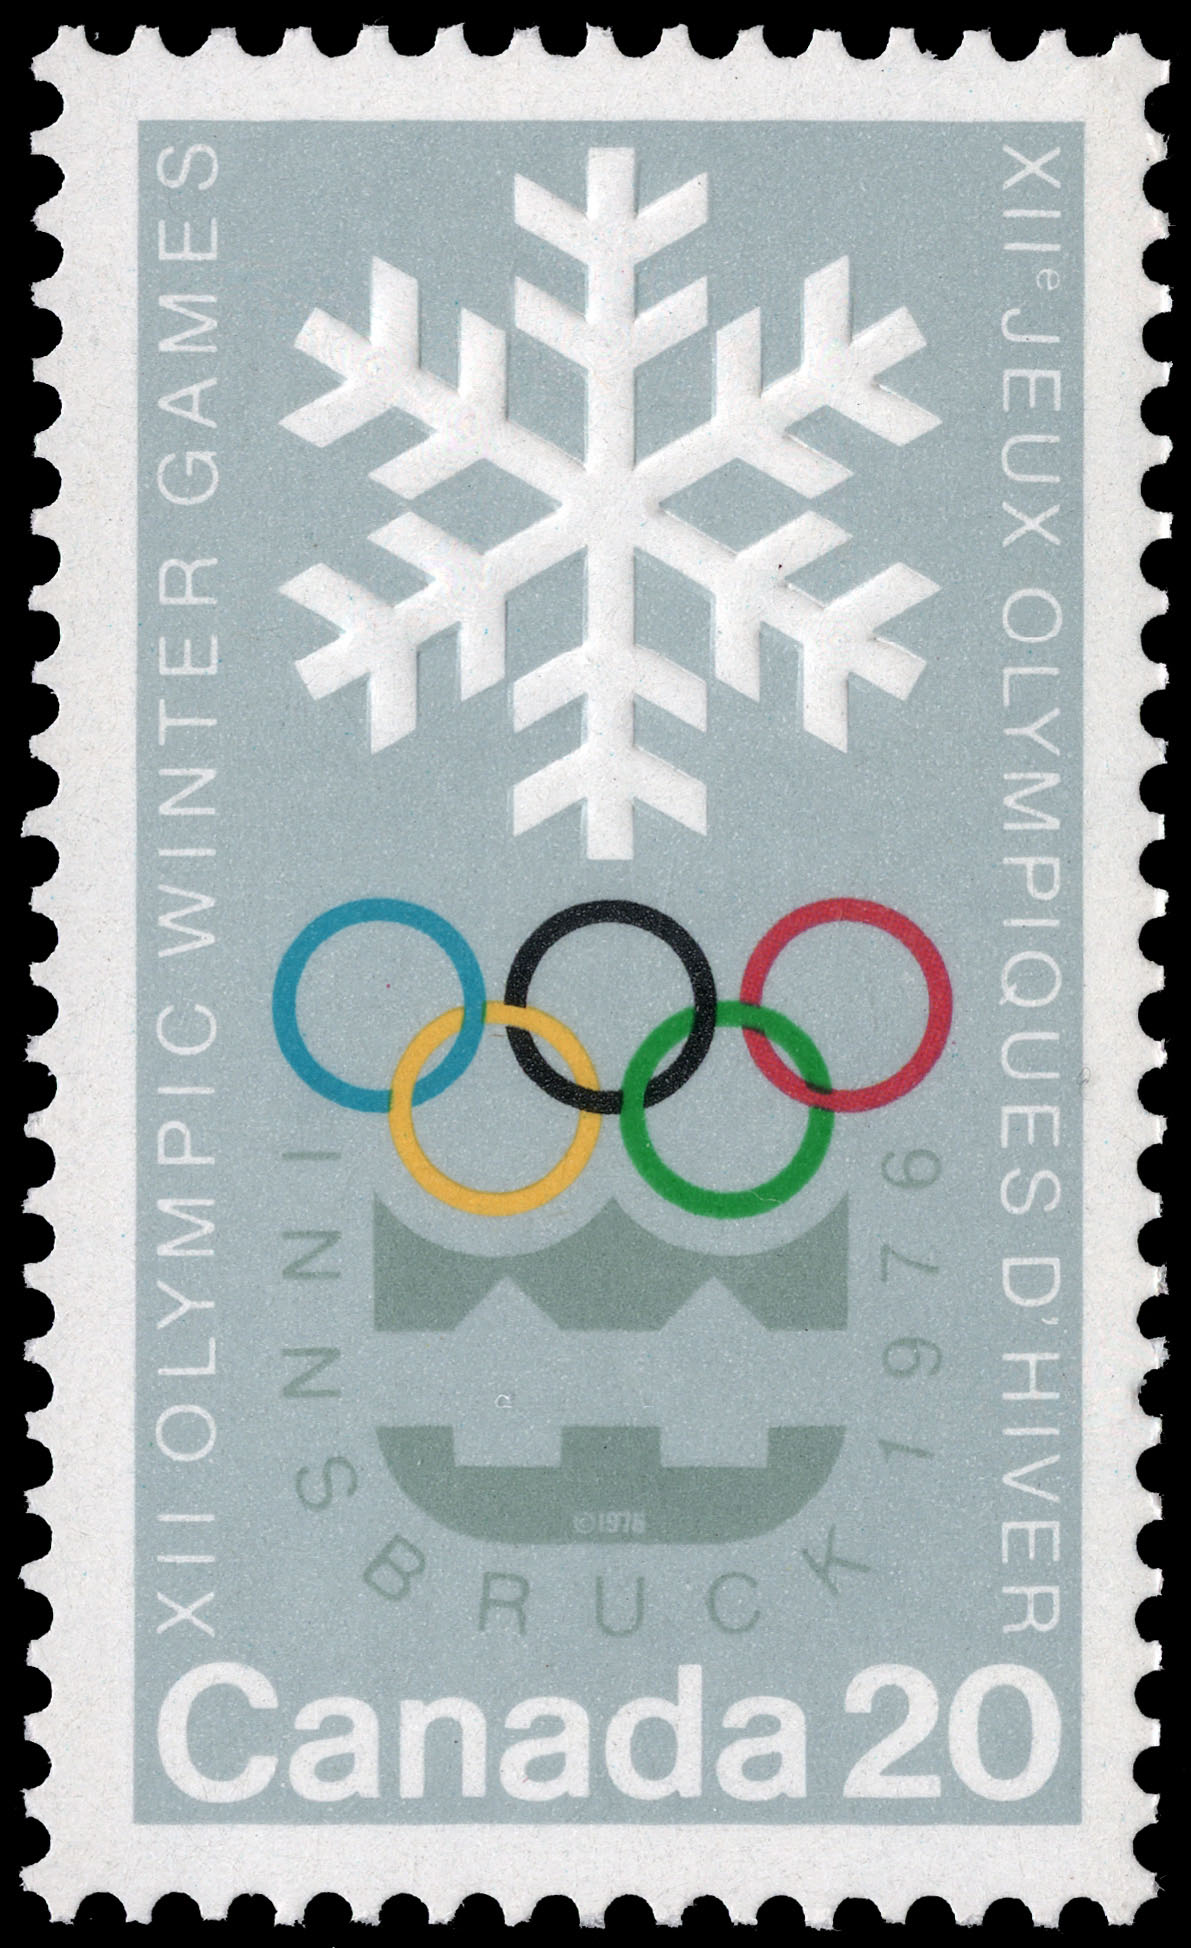 XII Olympic Winter Games, Innsbruck, 1976 Canada Postage Stamp